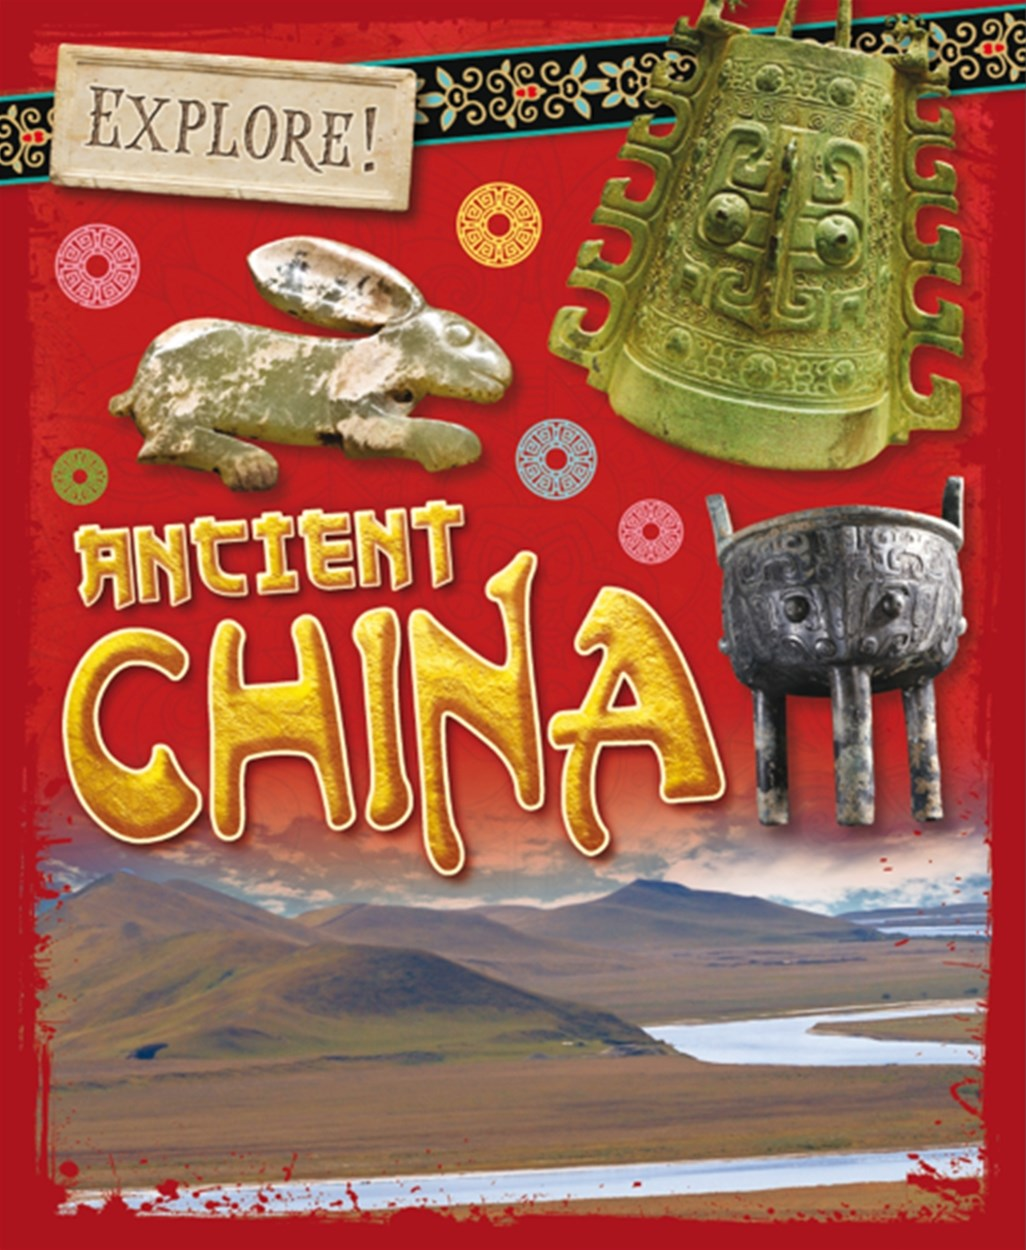 Explore!: Ancient China